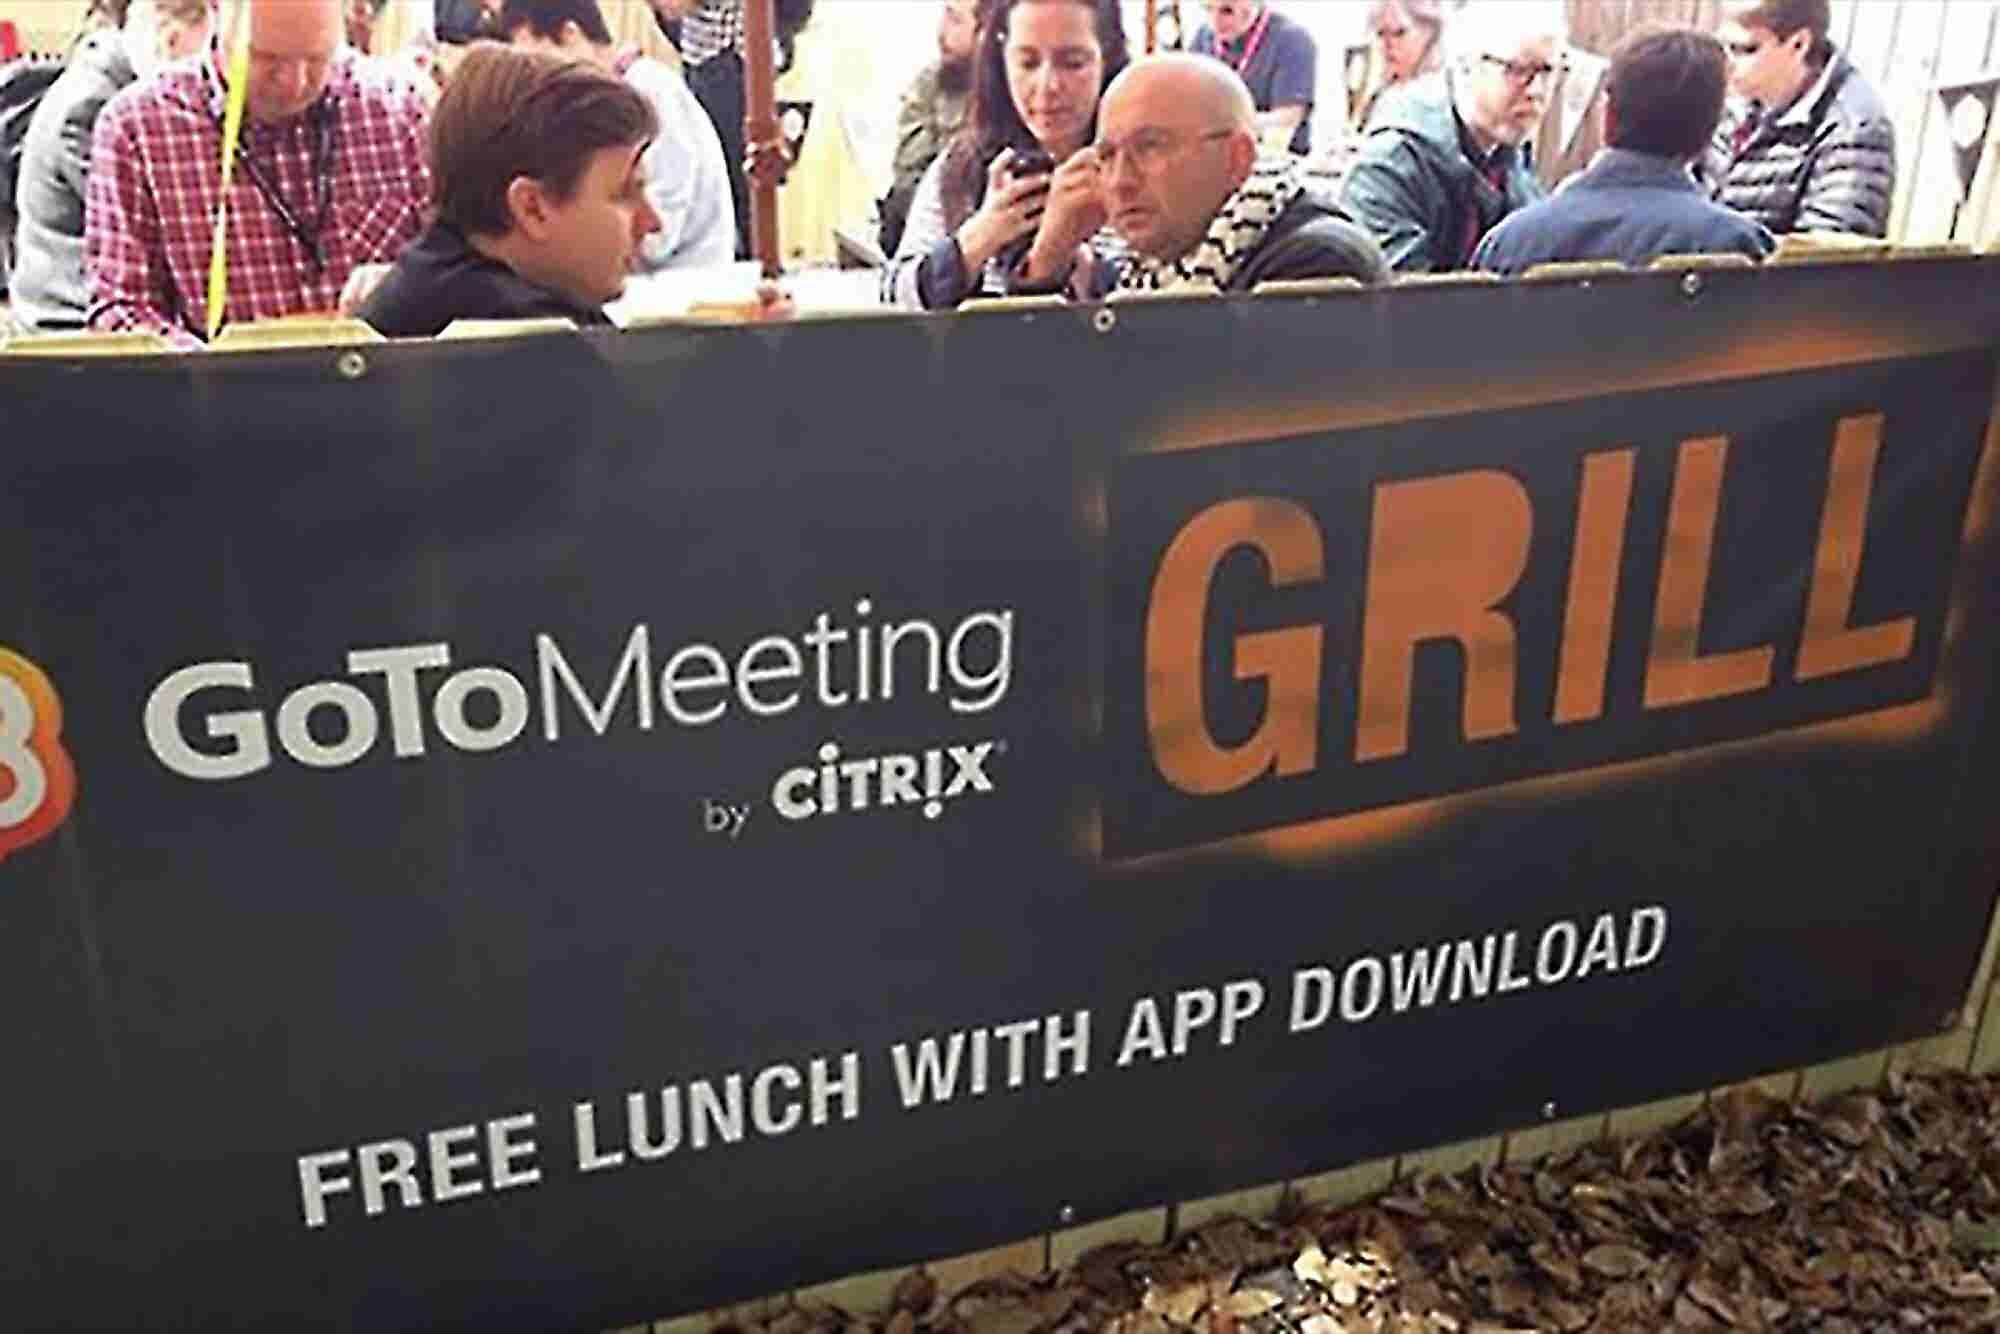 Ideas From SXSW: How to Get People to Download Your App